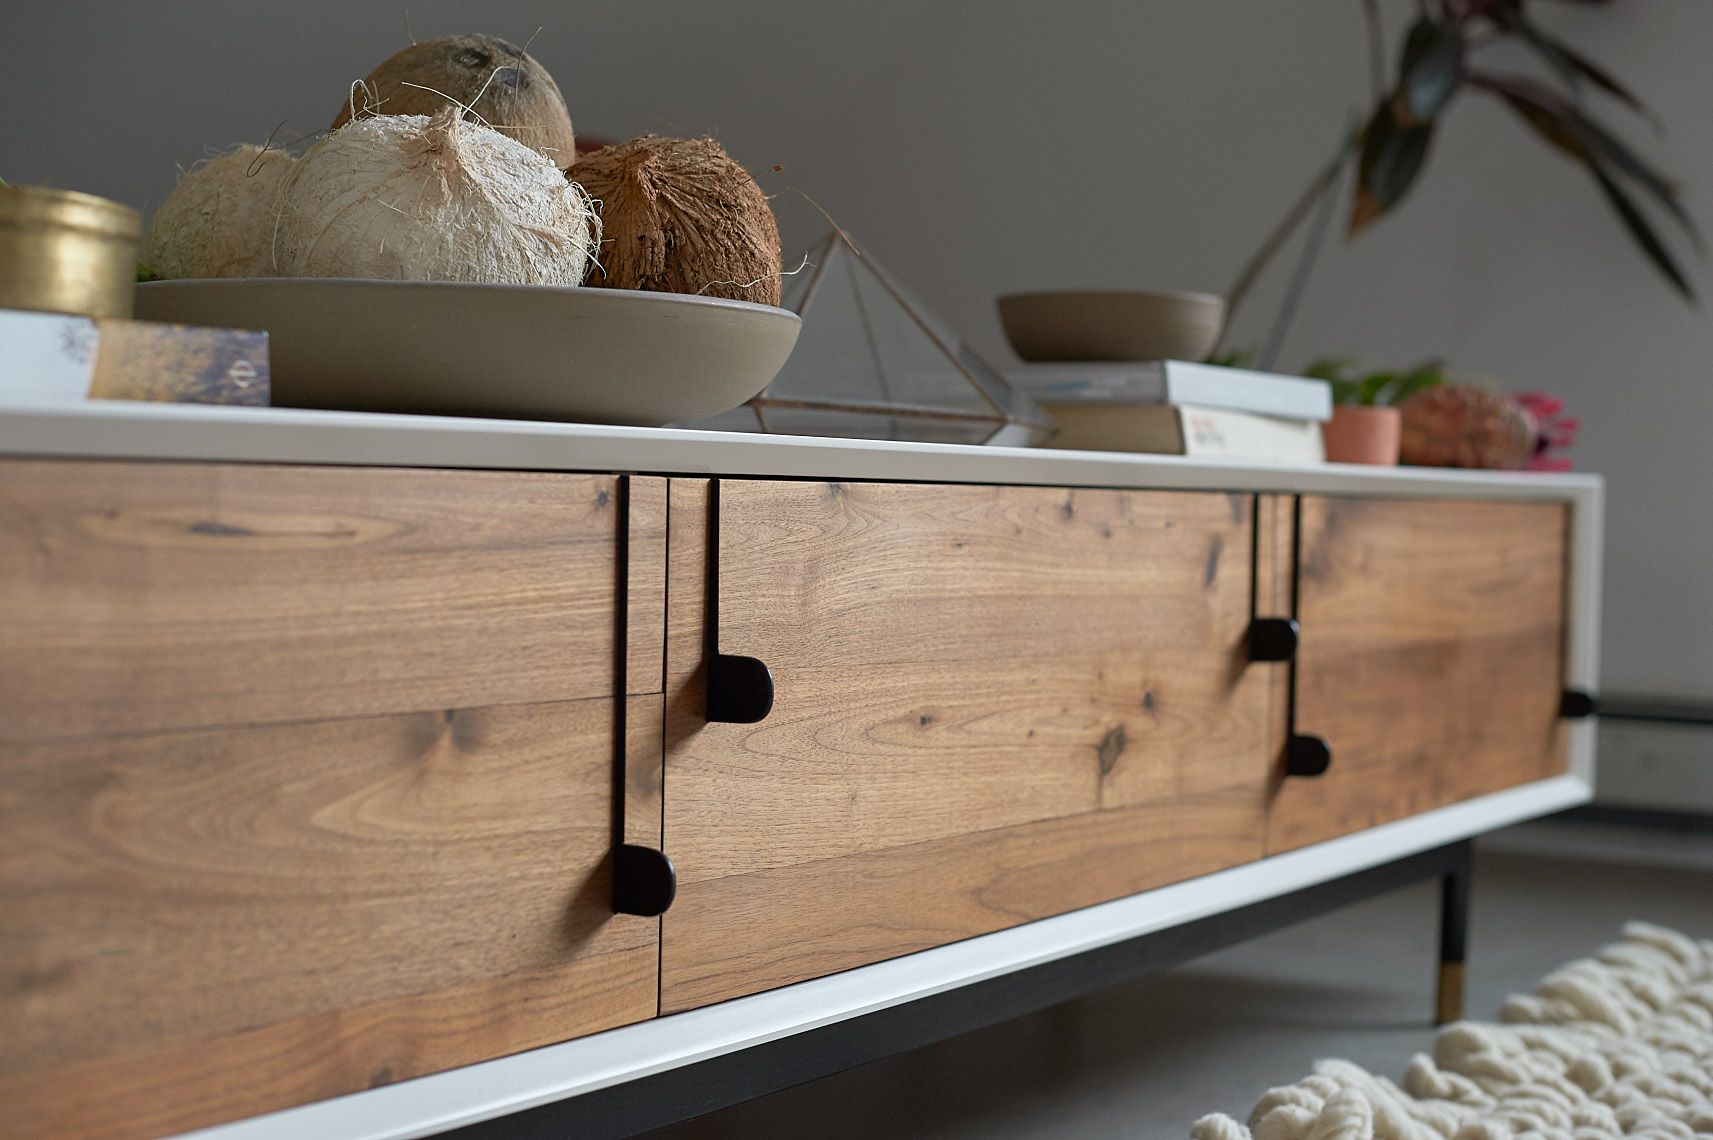 custom walnut credenza with white edges and black vertical pulls propped with coconuts